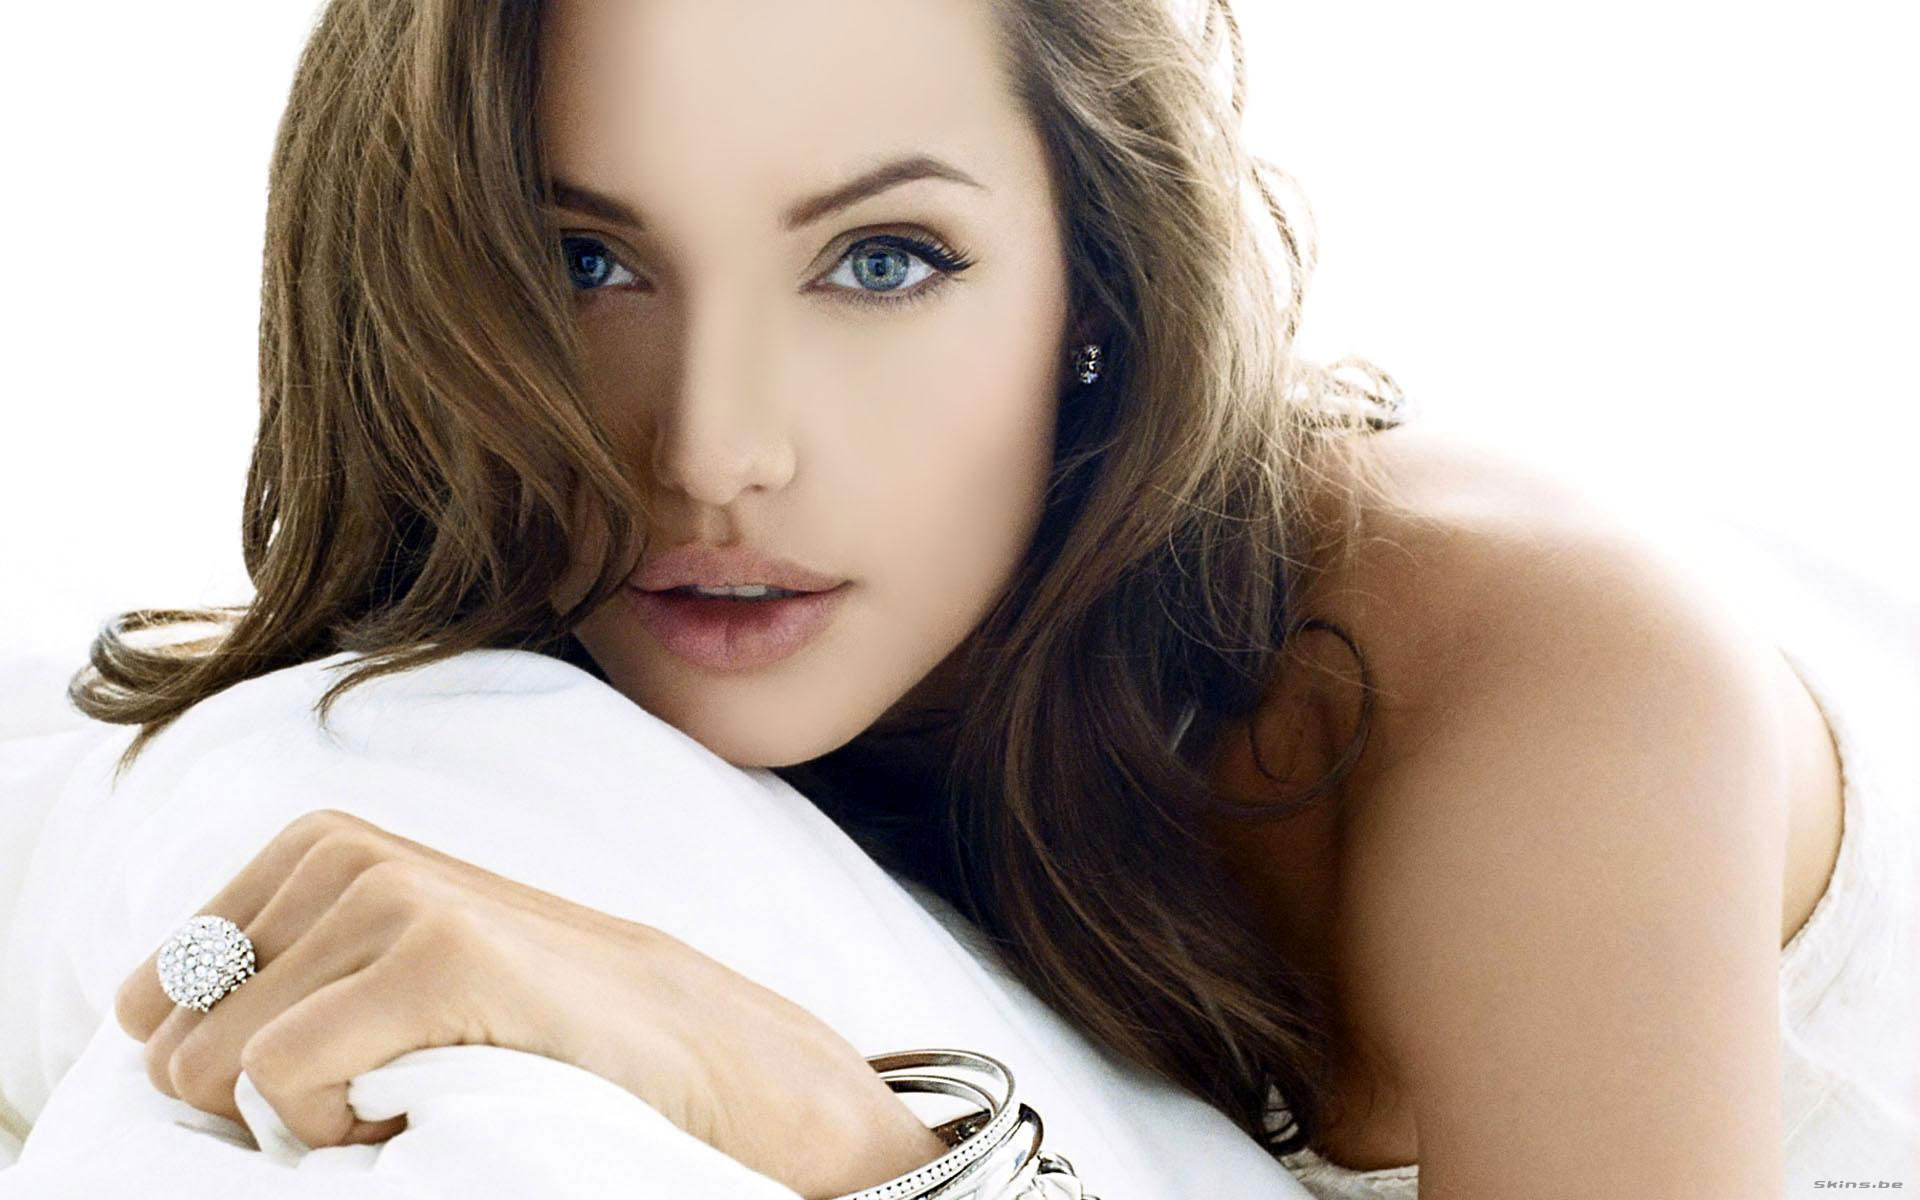 Hollywood Actress Angelina Jolie Sexy Wallpapers   All HD Wallpapers 1920x1200